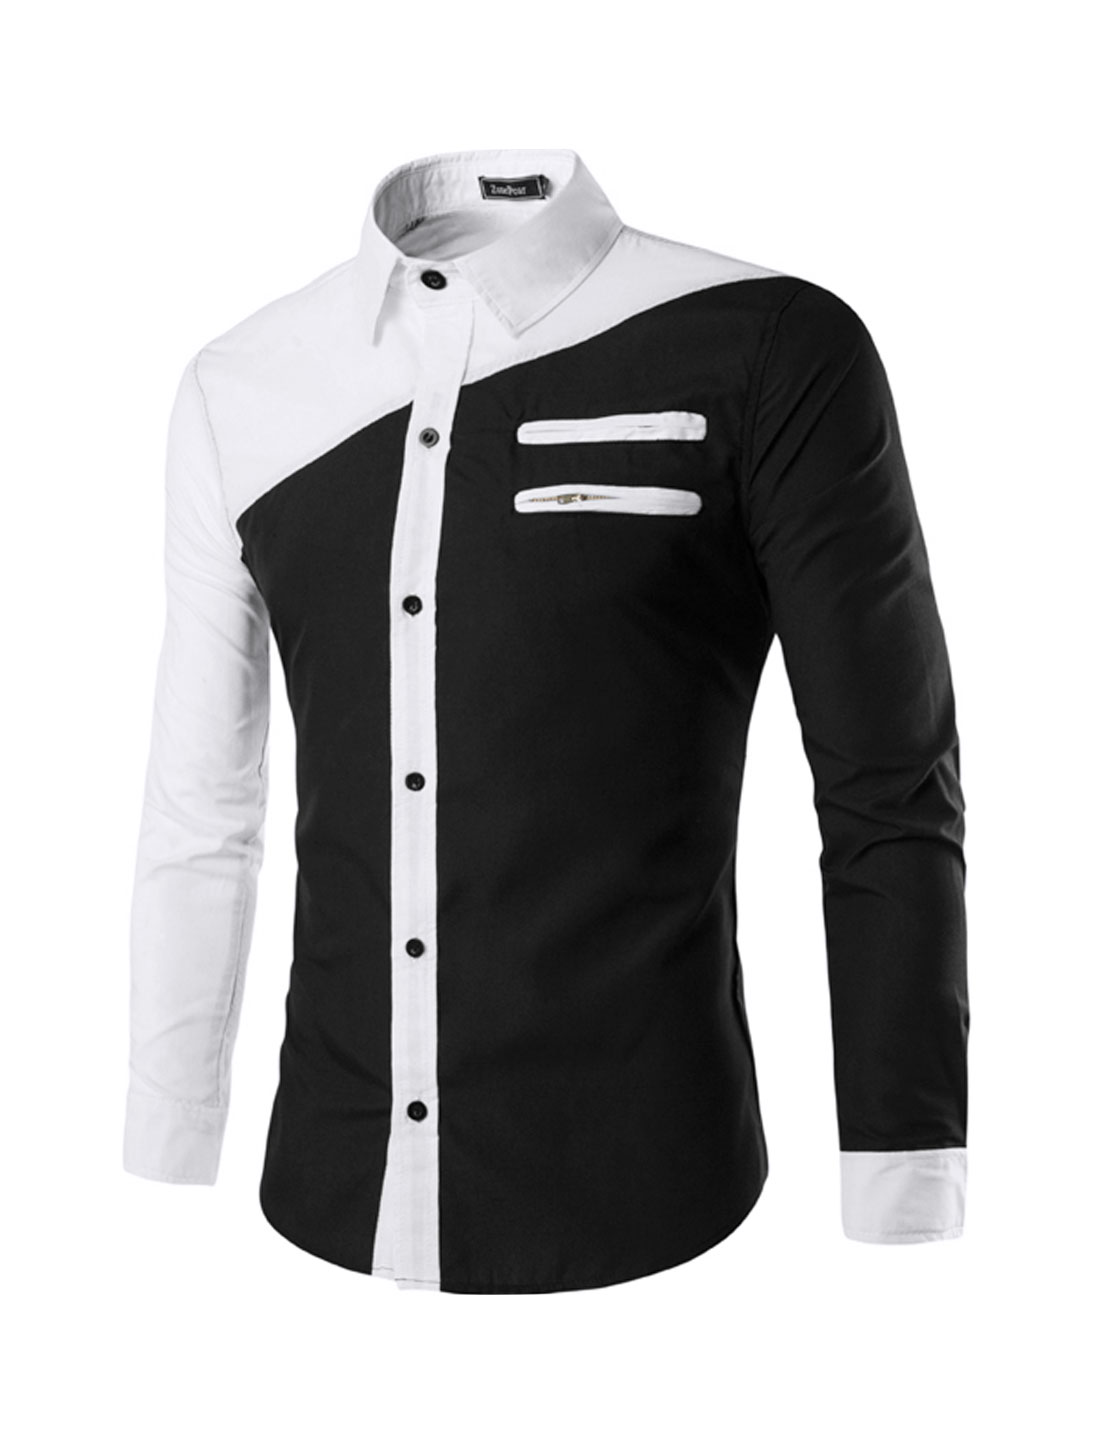 Men Zippered Mock Pockets Button Front Color Block Casual Shirt Black M